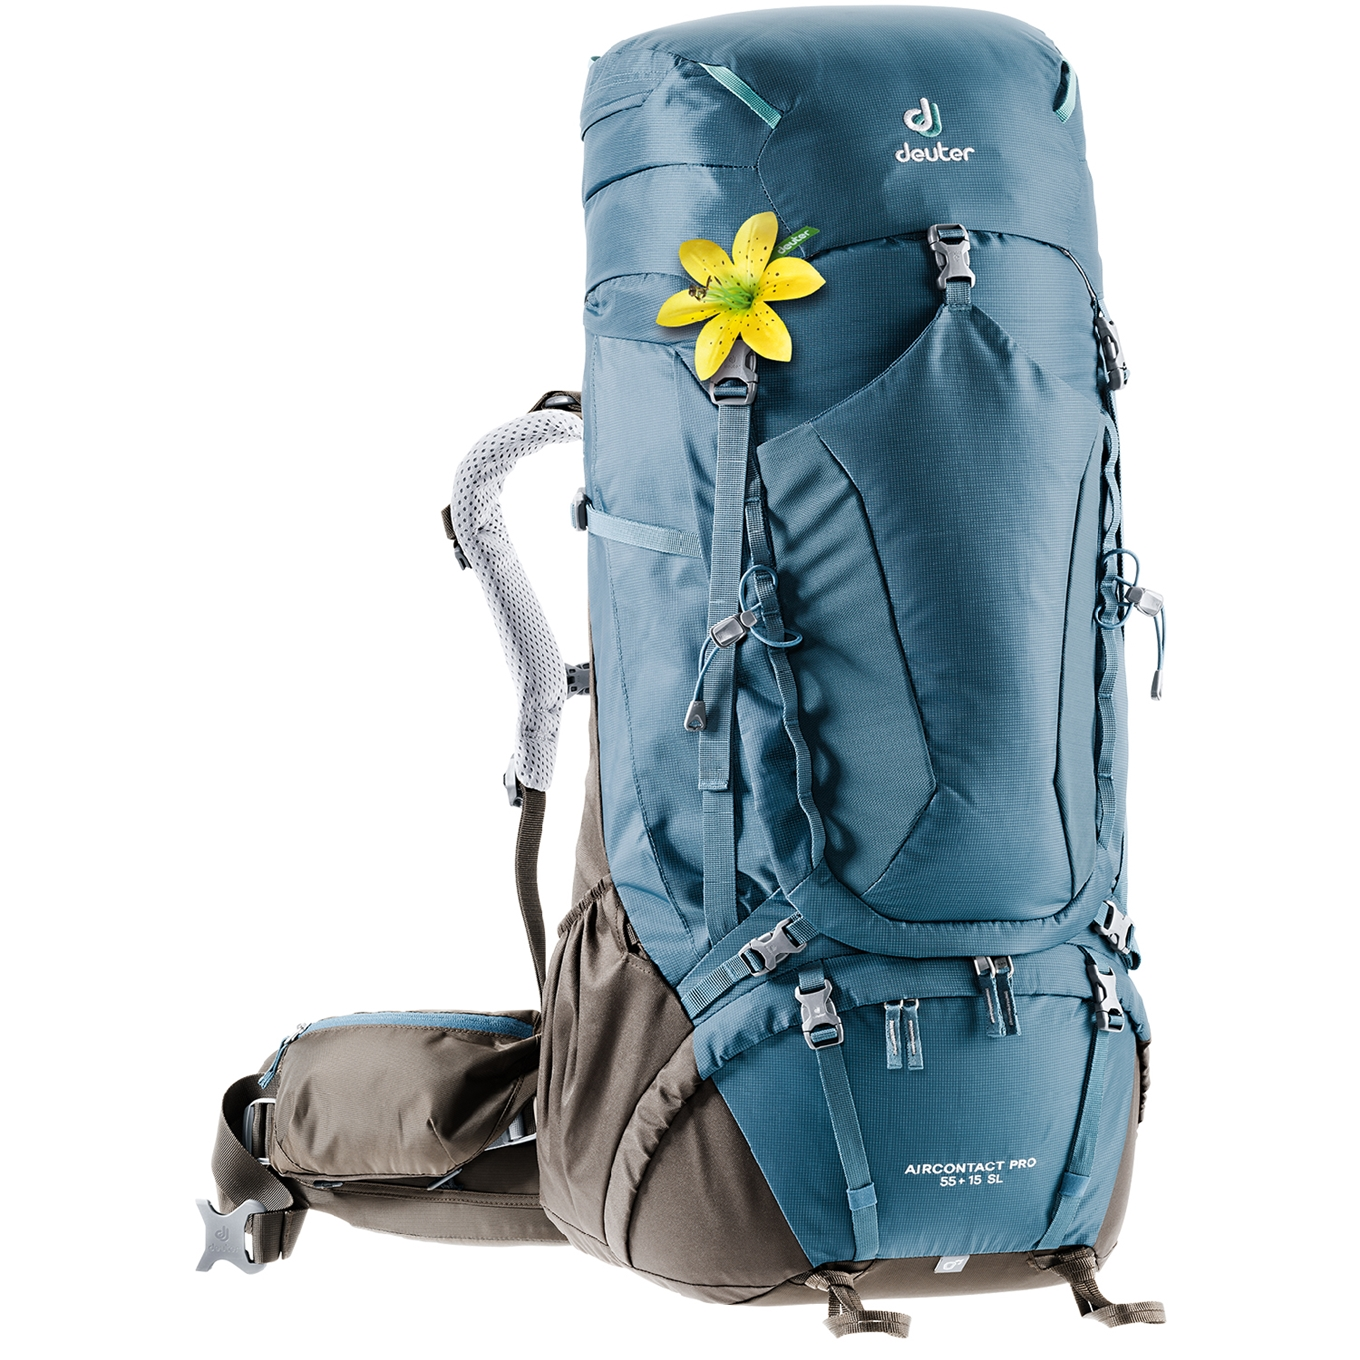 Deuter Aircontact Pro 55 + 15 SL arctic/coffee backpack <br/></noscript><img class=